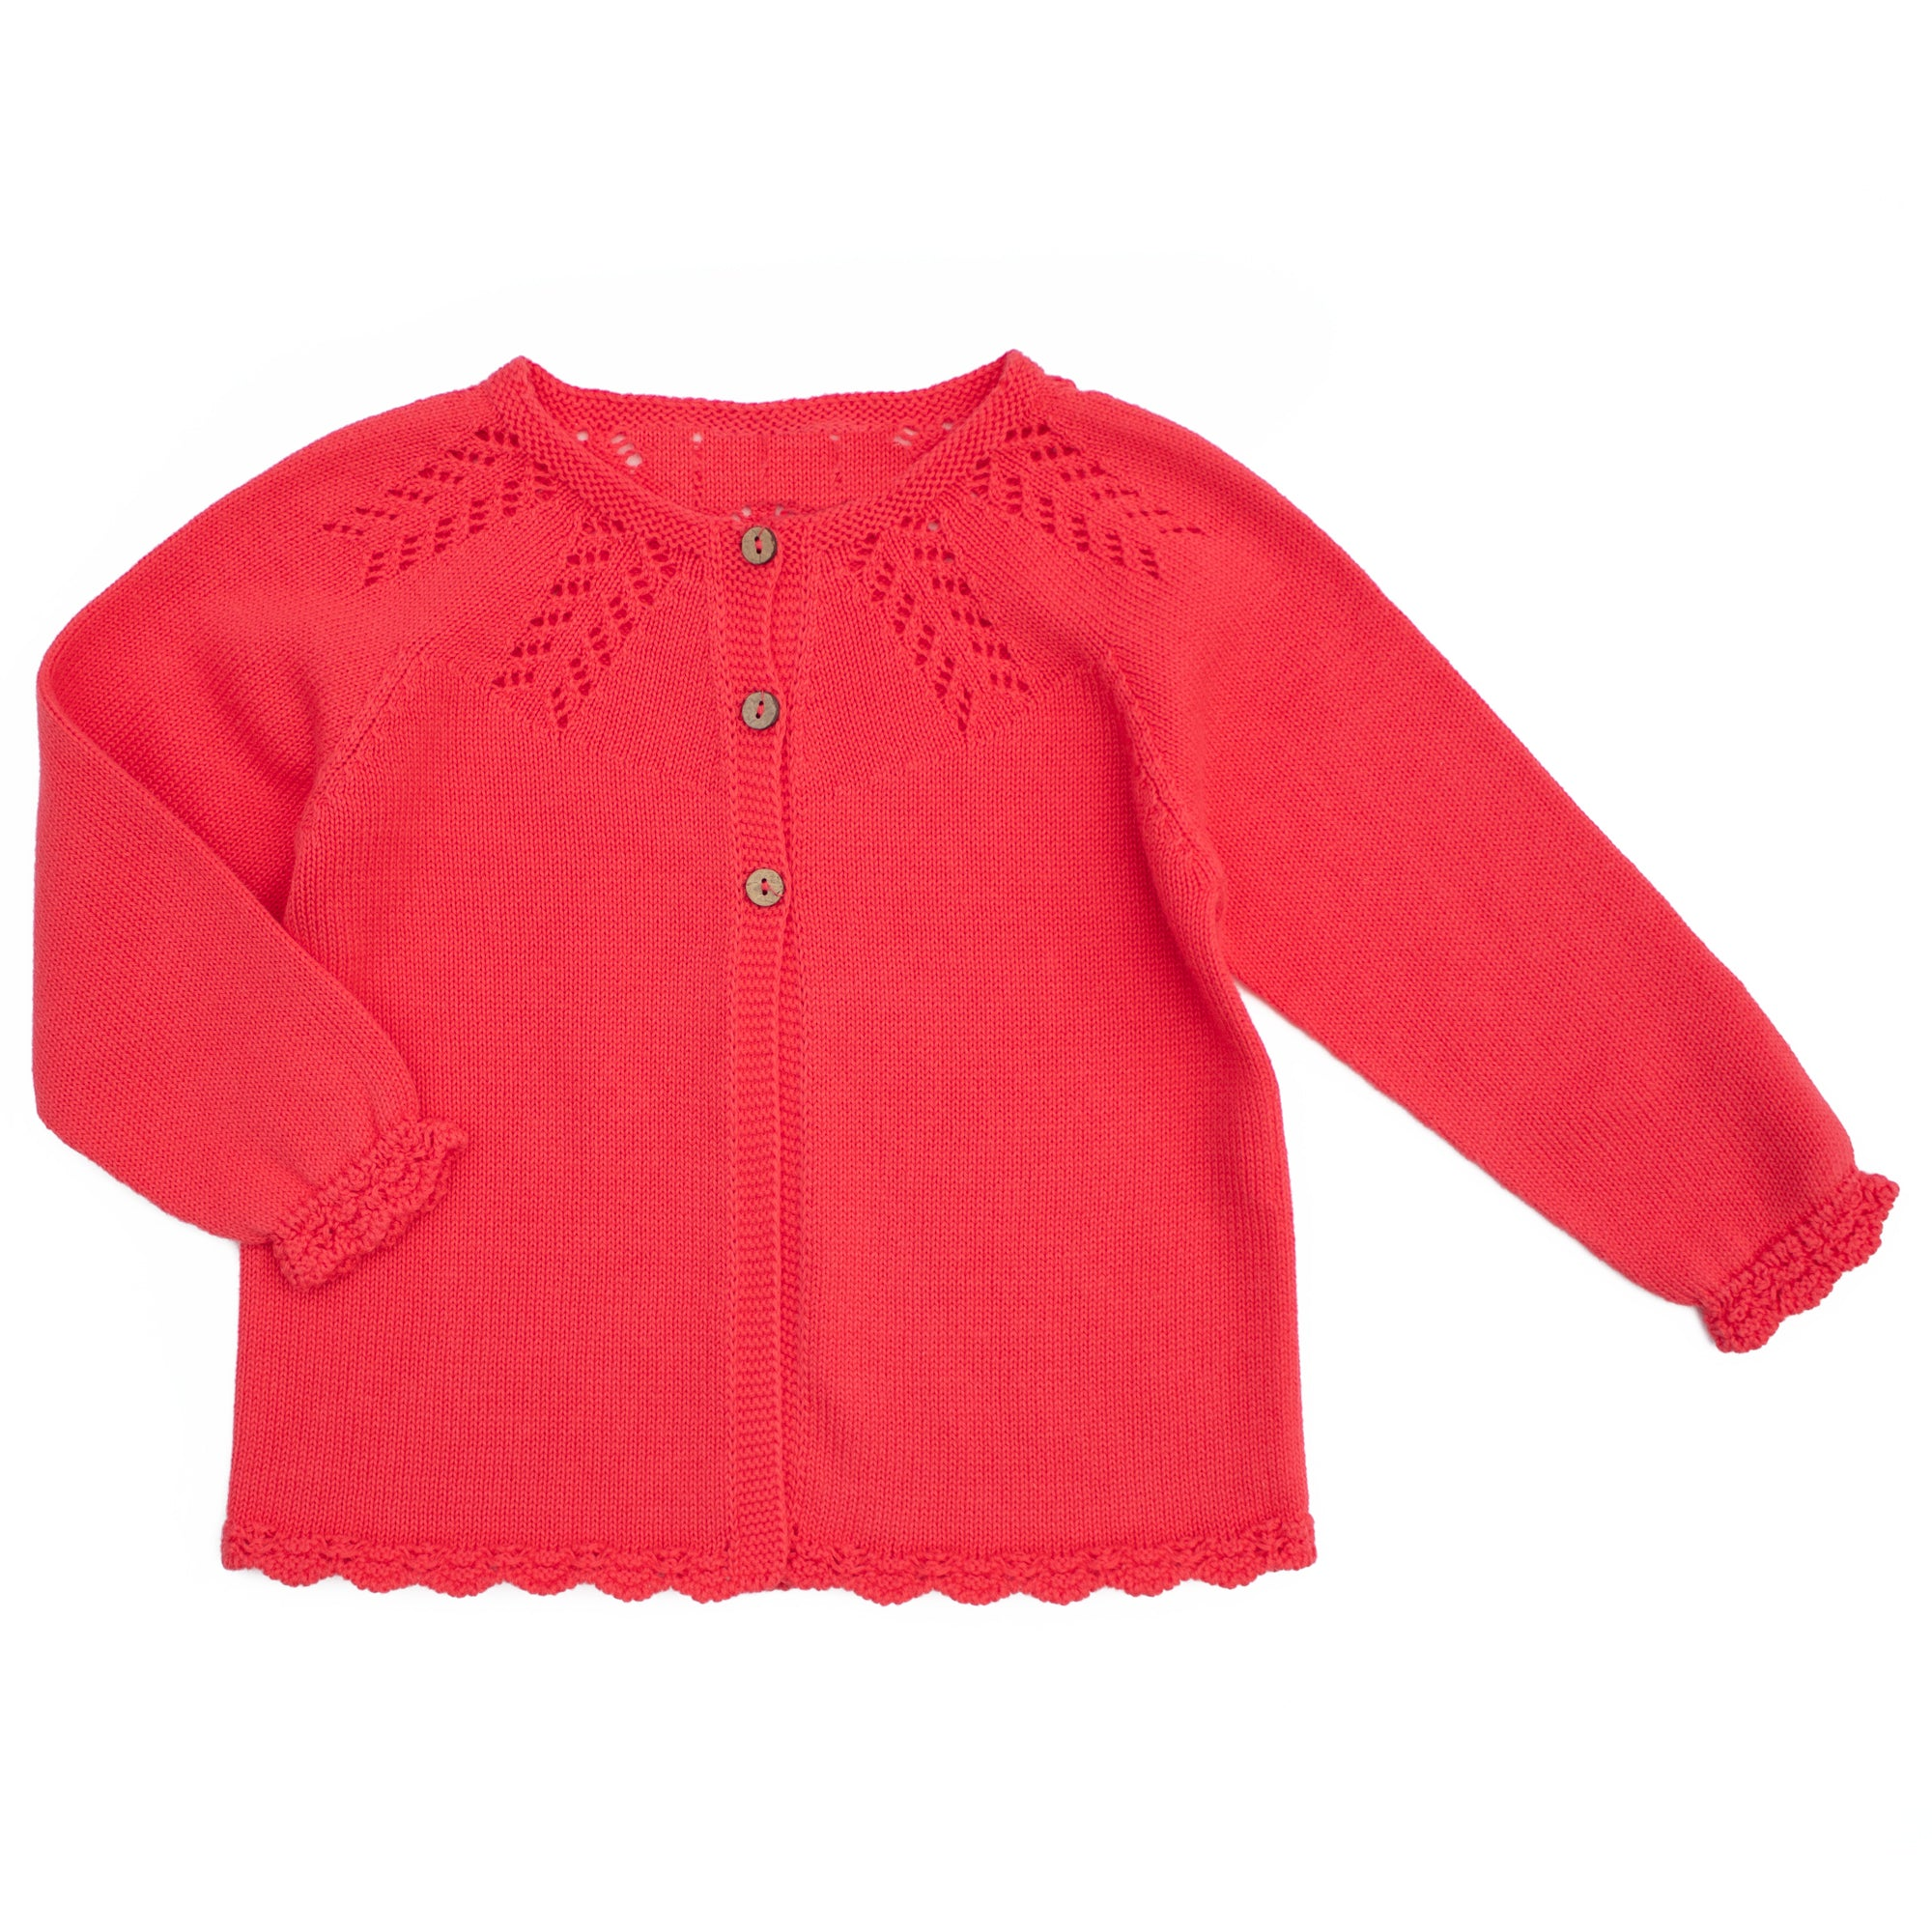 coral coloured cotton baby cardigan, made in portugal